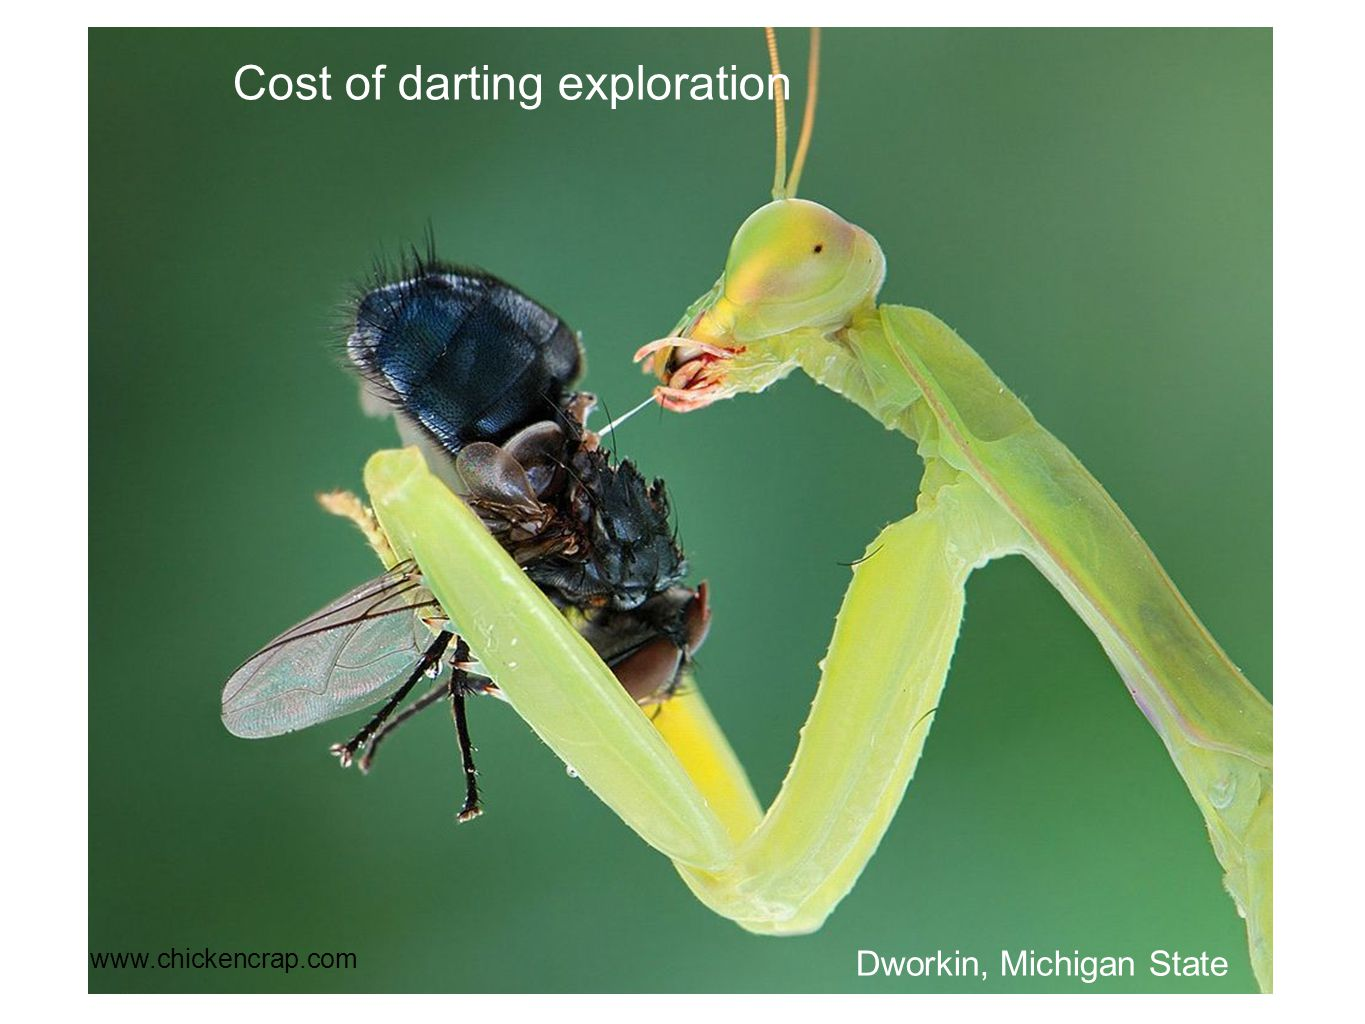 www.chickencrap.com Cost of darting exploration Dworkin, Michigan State